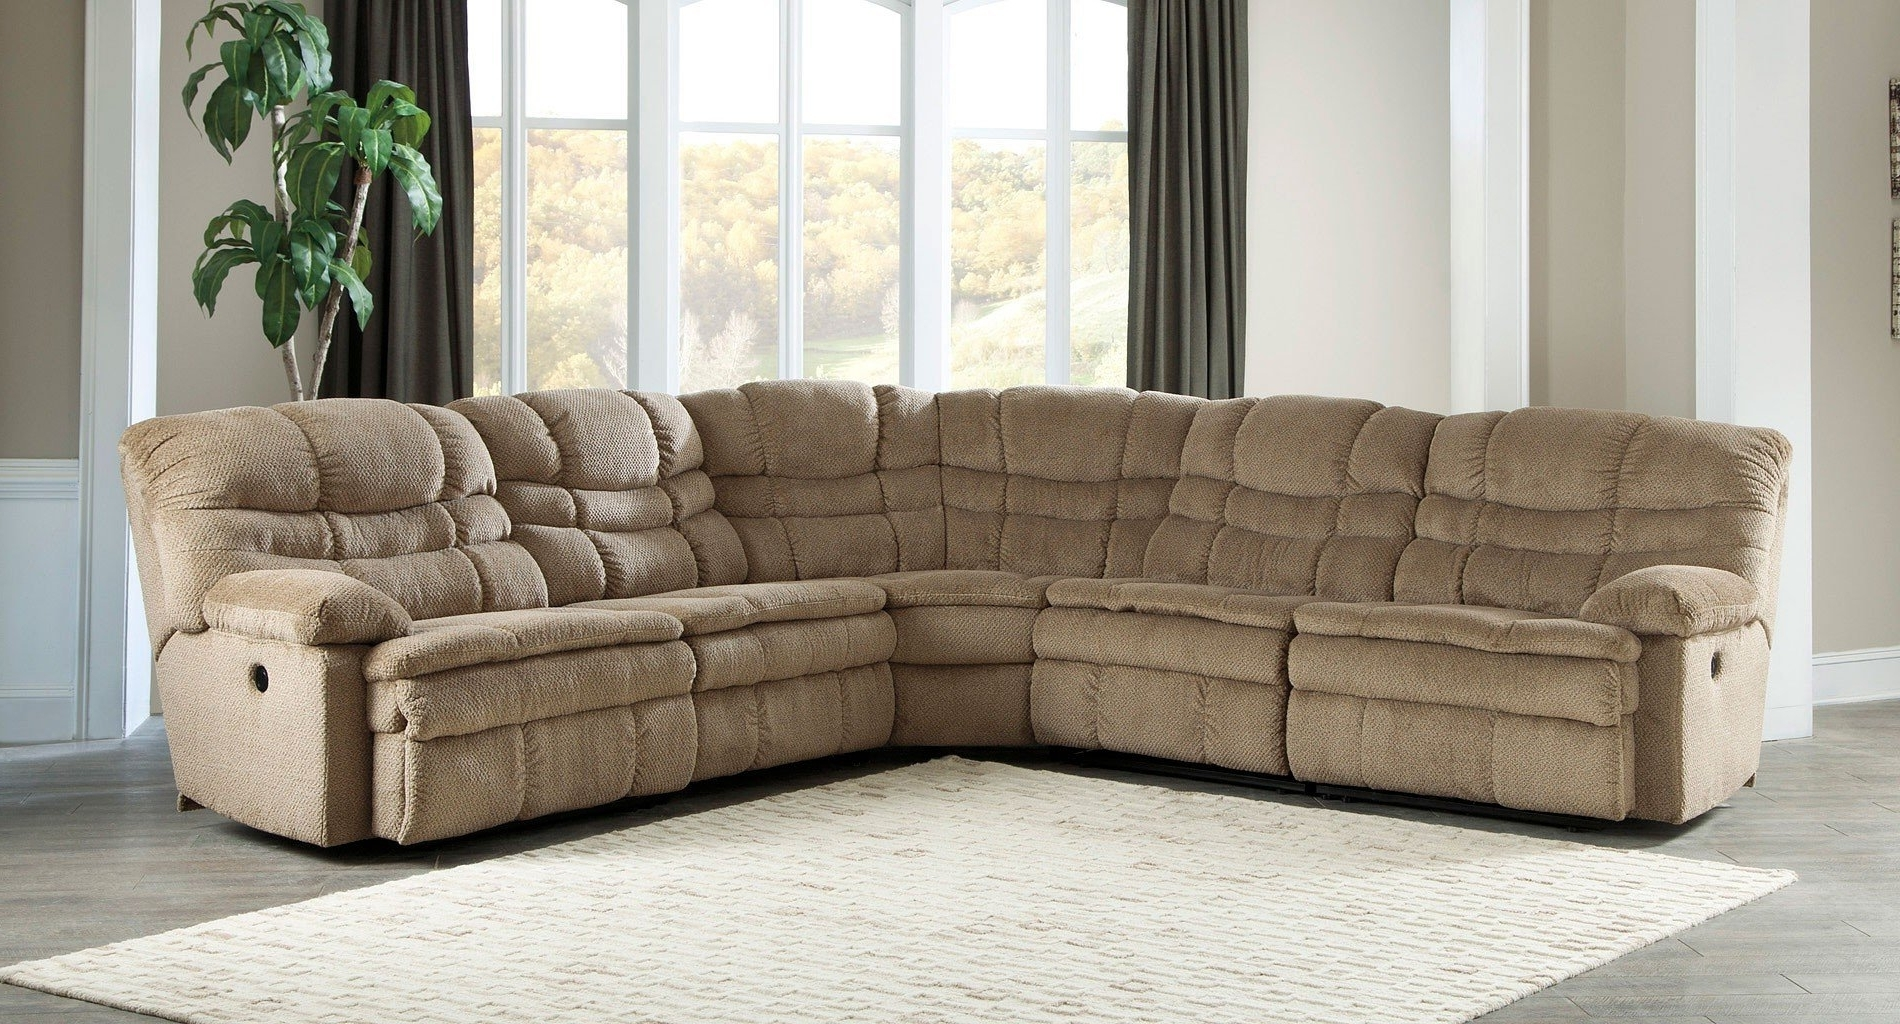 New Orleans Sectional Sofas Inside Newest Zavion Caramel Modular Reclining Sectional – Sectionals – Living (View 13 of 15)